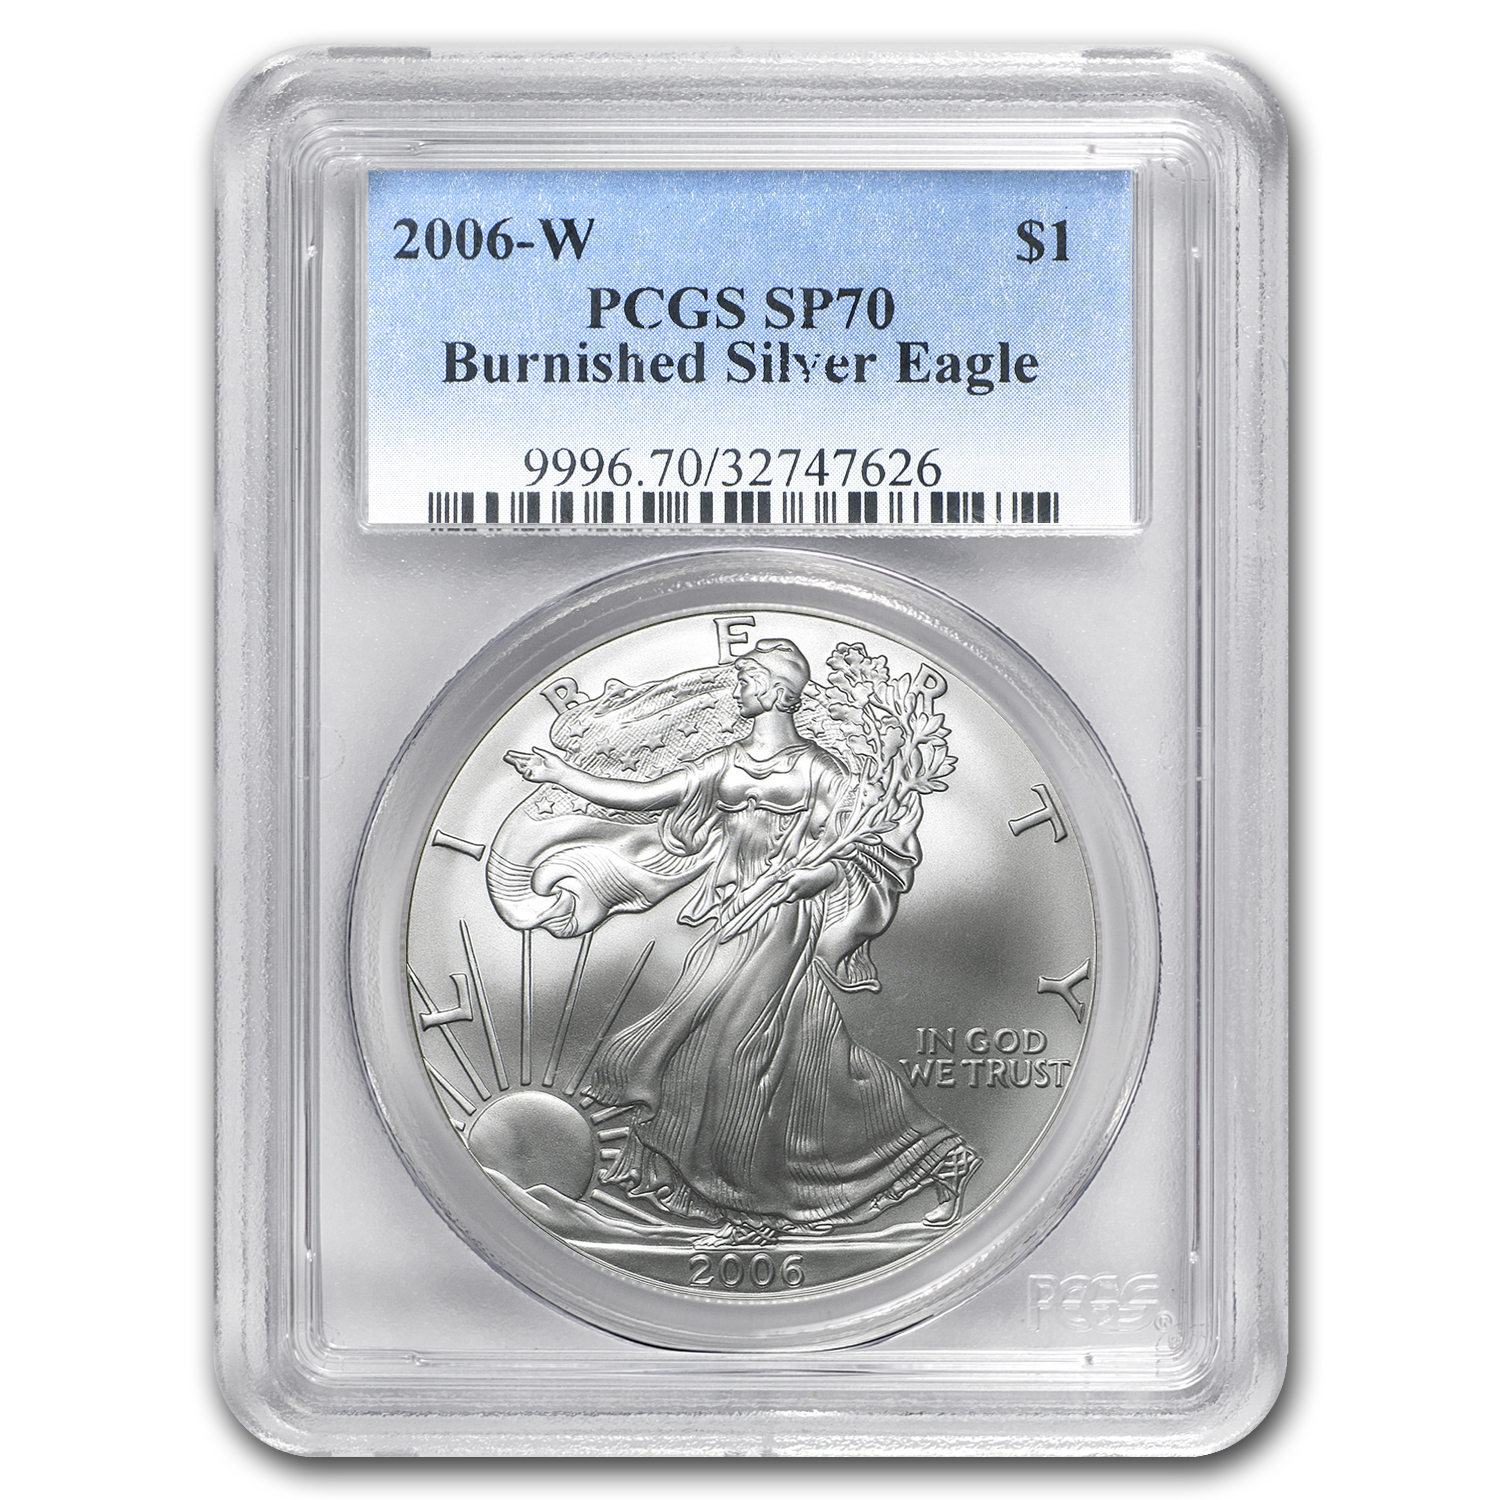 2006-W Burnished Silver American Eagle MS-70 PCGS